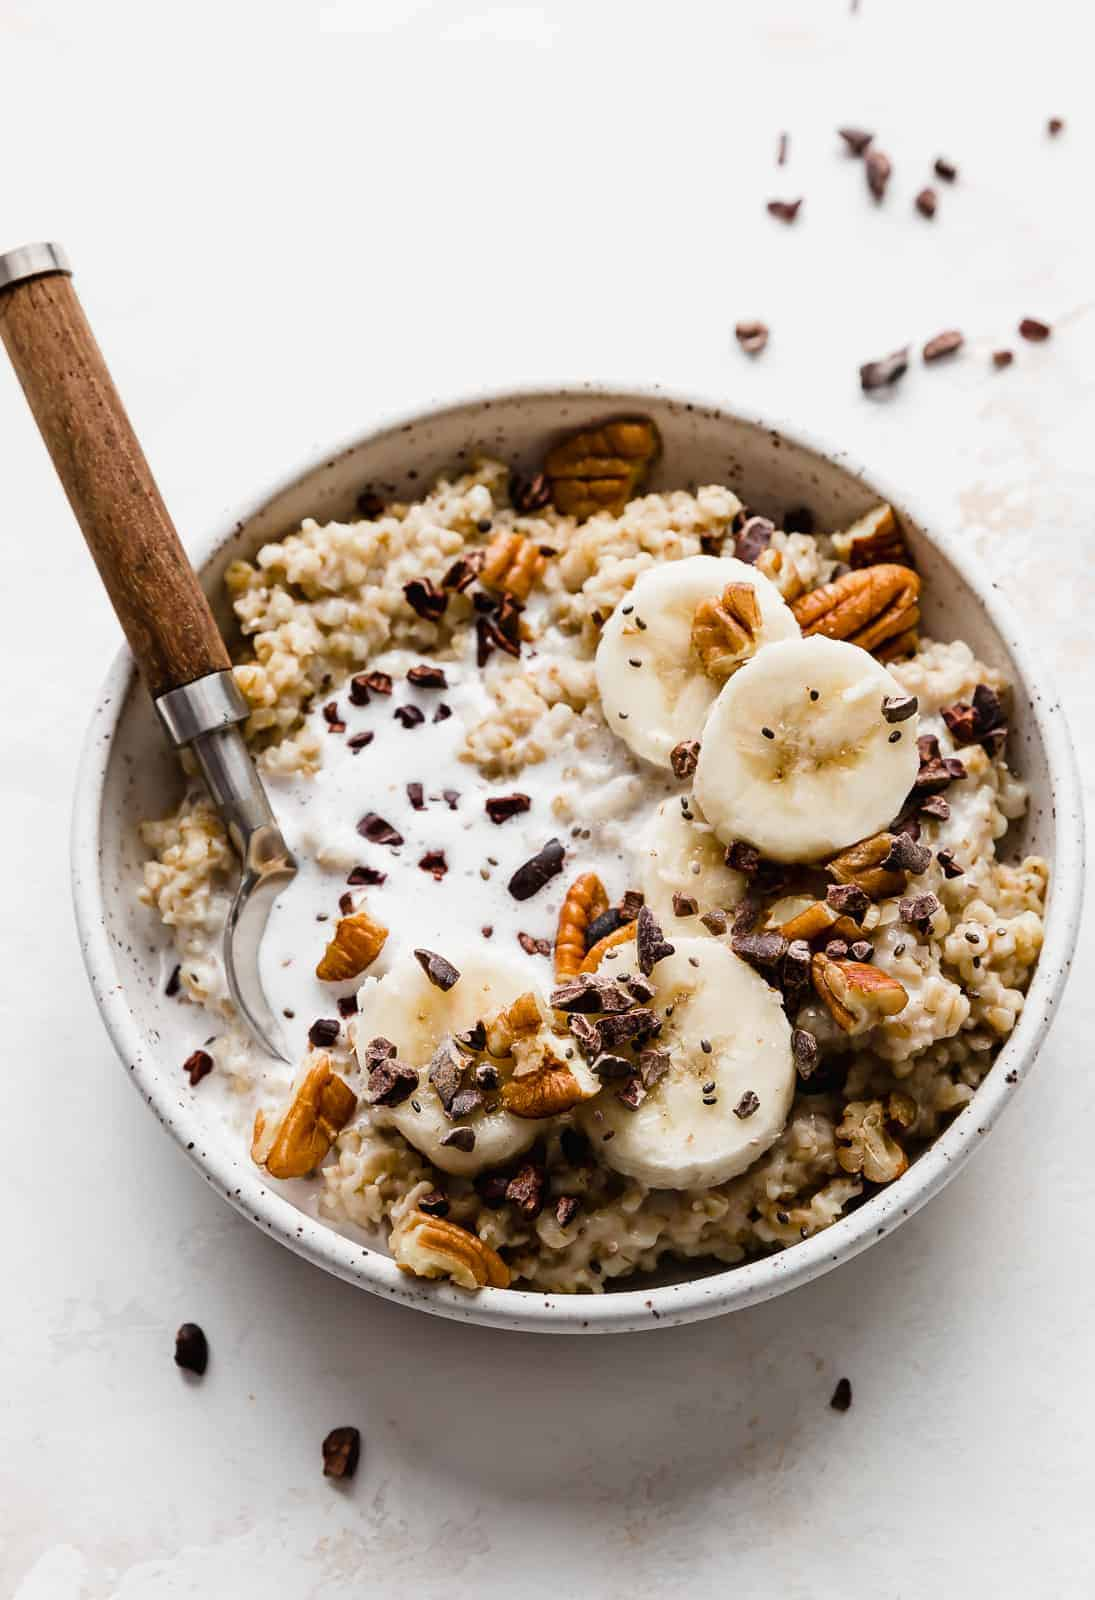 A bowl of steel cut oats topped with sliced bananas, pecans, and cocoa nibs.